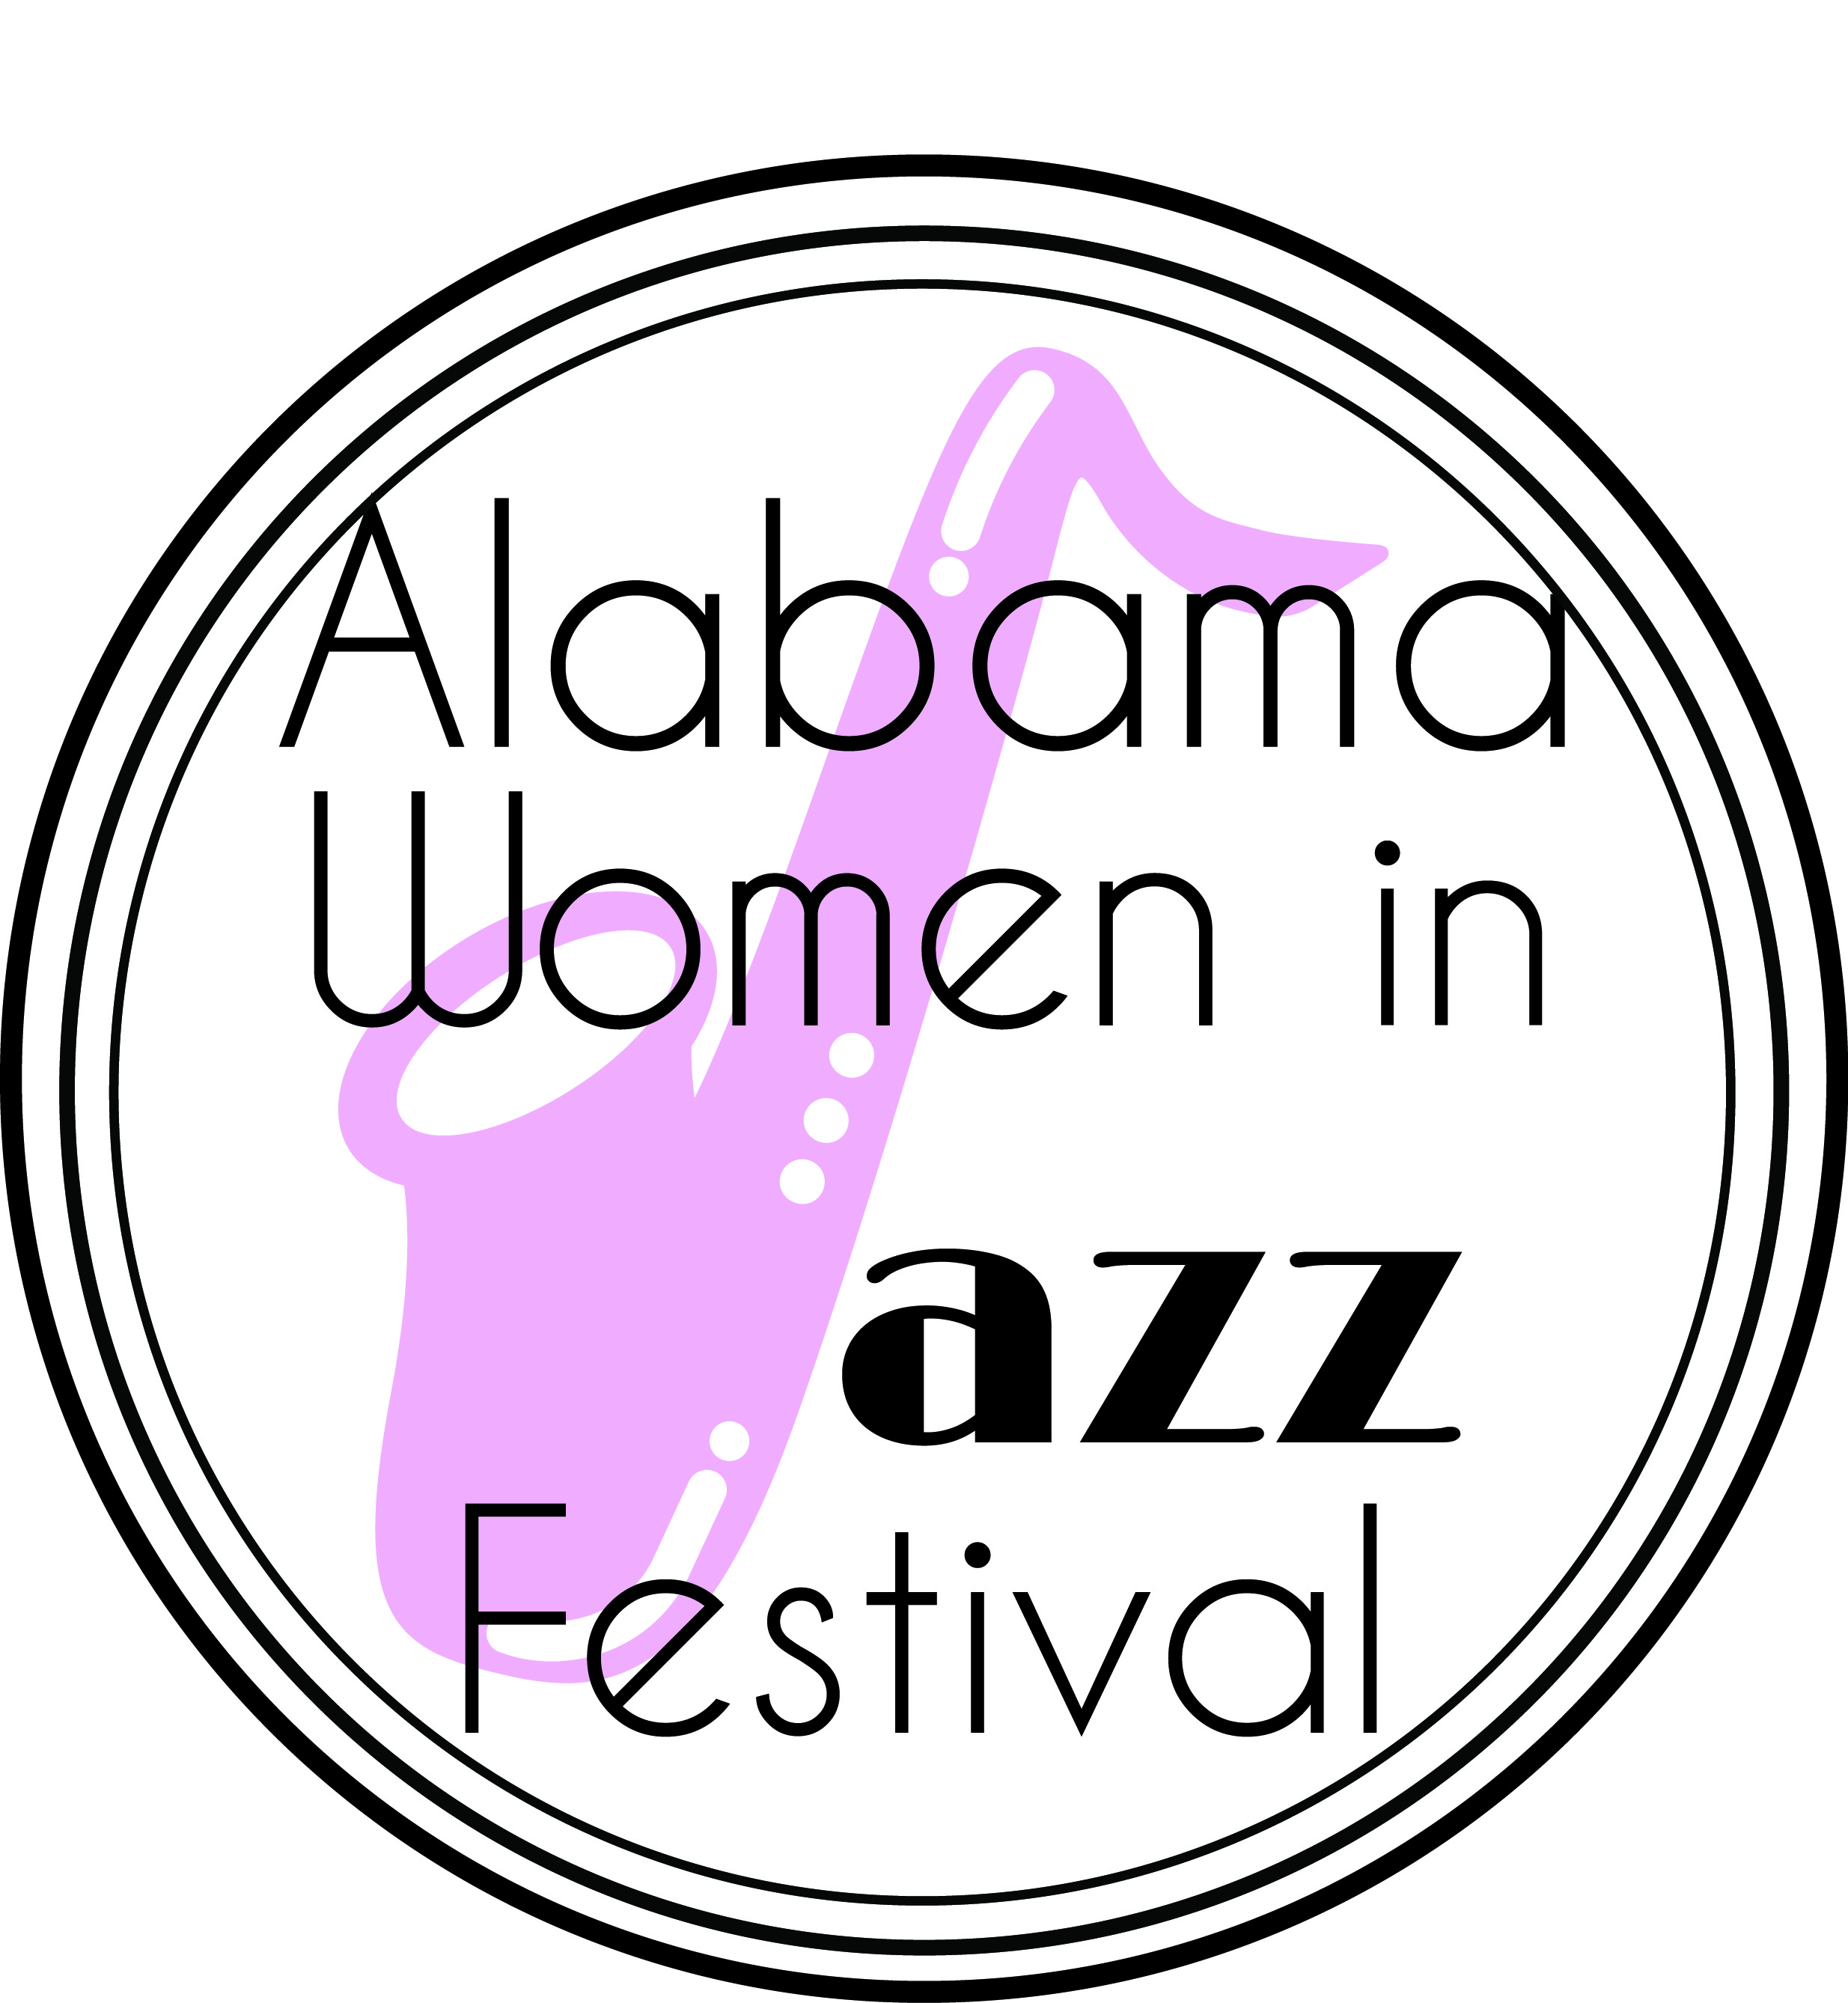 https://alabama-travel.s3.amazonaws.com/partners-uploads/photo/image/5b50cb1981ffd90995000098/al_women_in_jazz_logo_v1.1.jpg